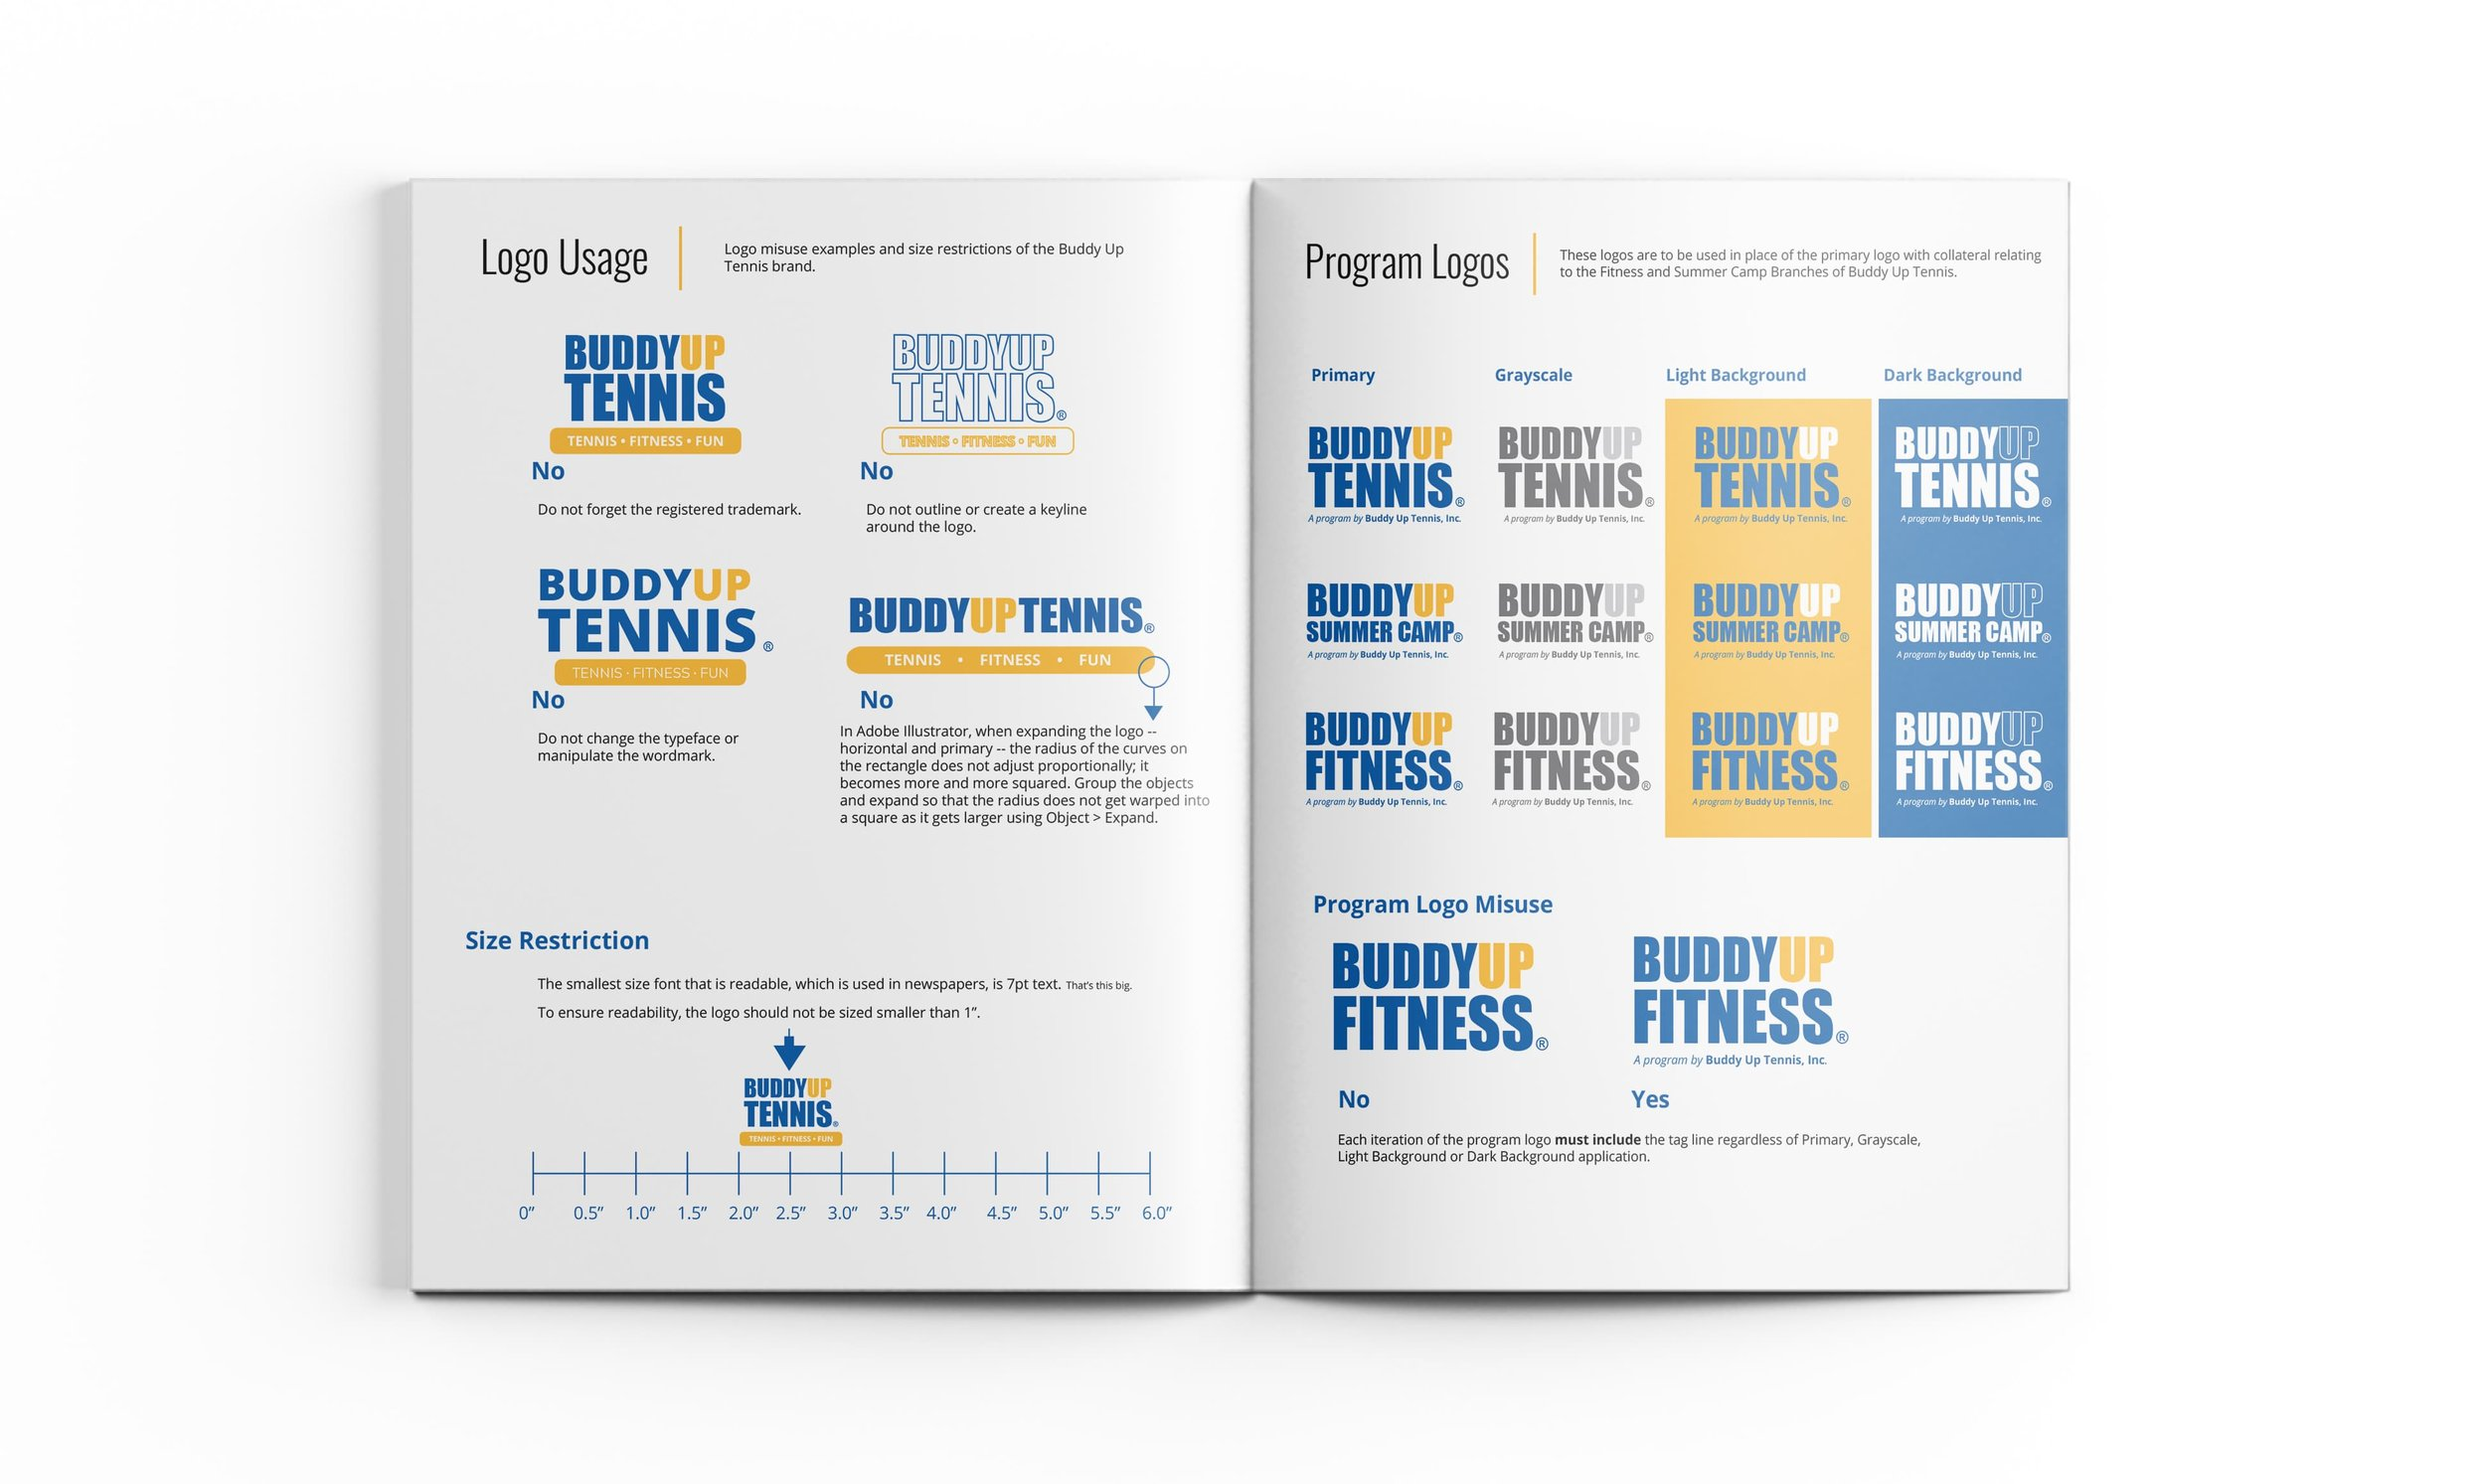 Buddy Up Tennis Brand Guide Mockup – Inside Program Logo Pages.jpg